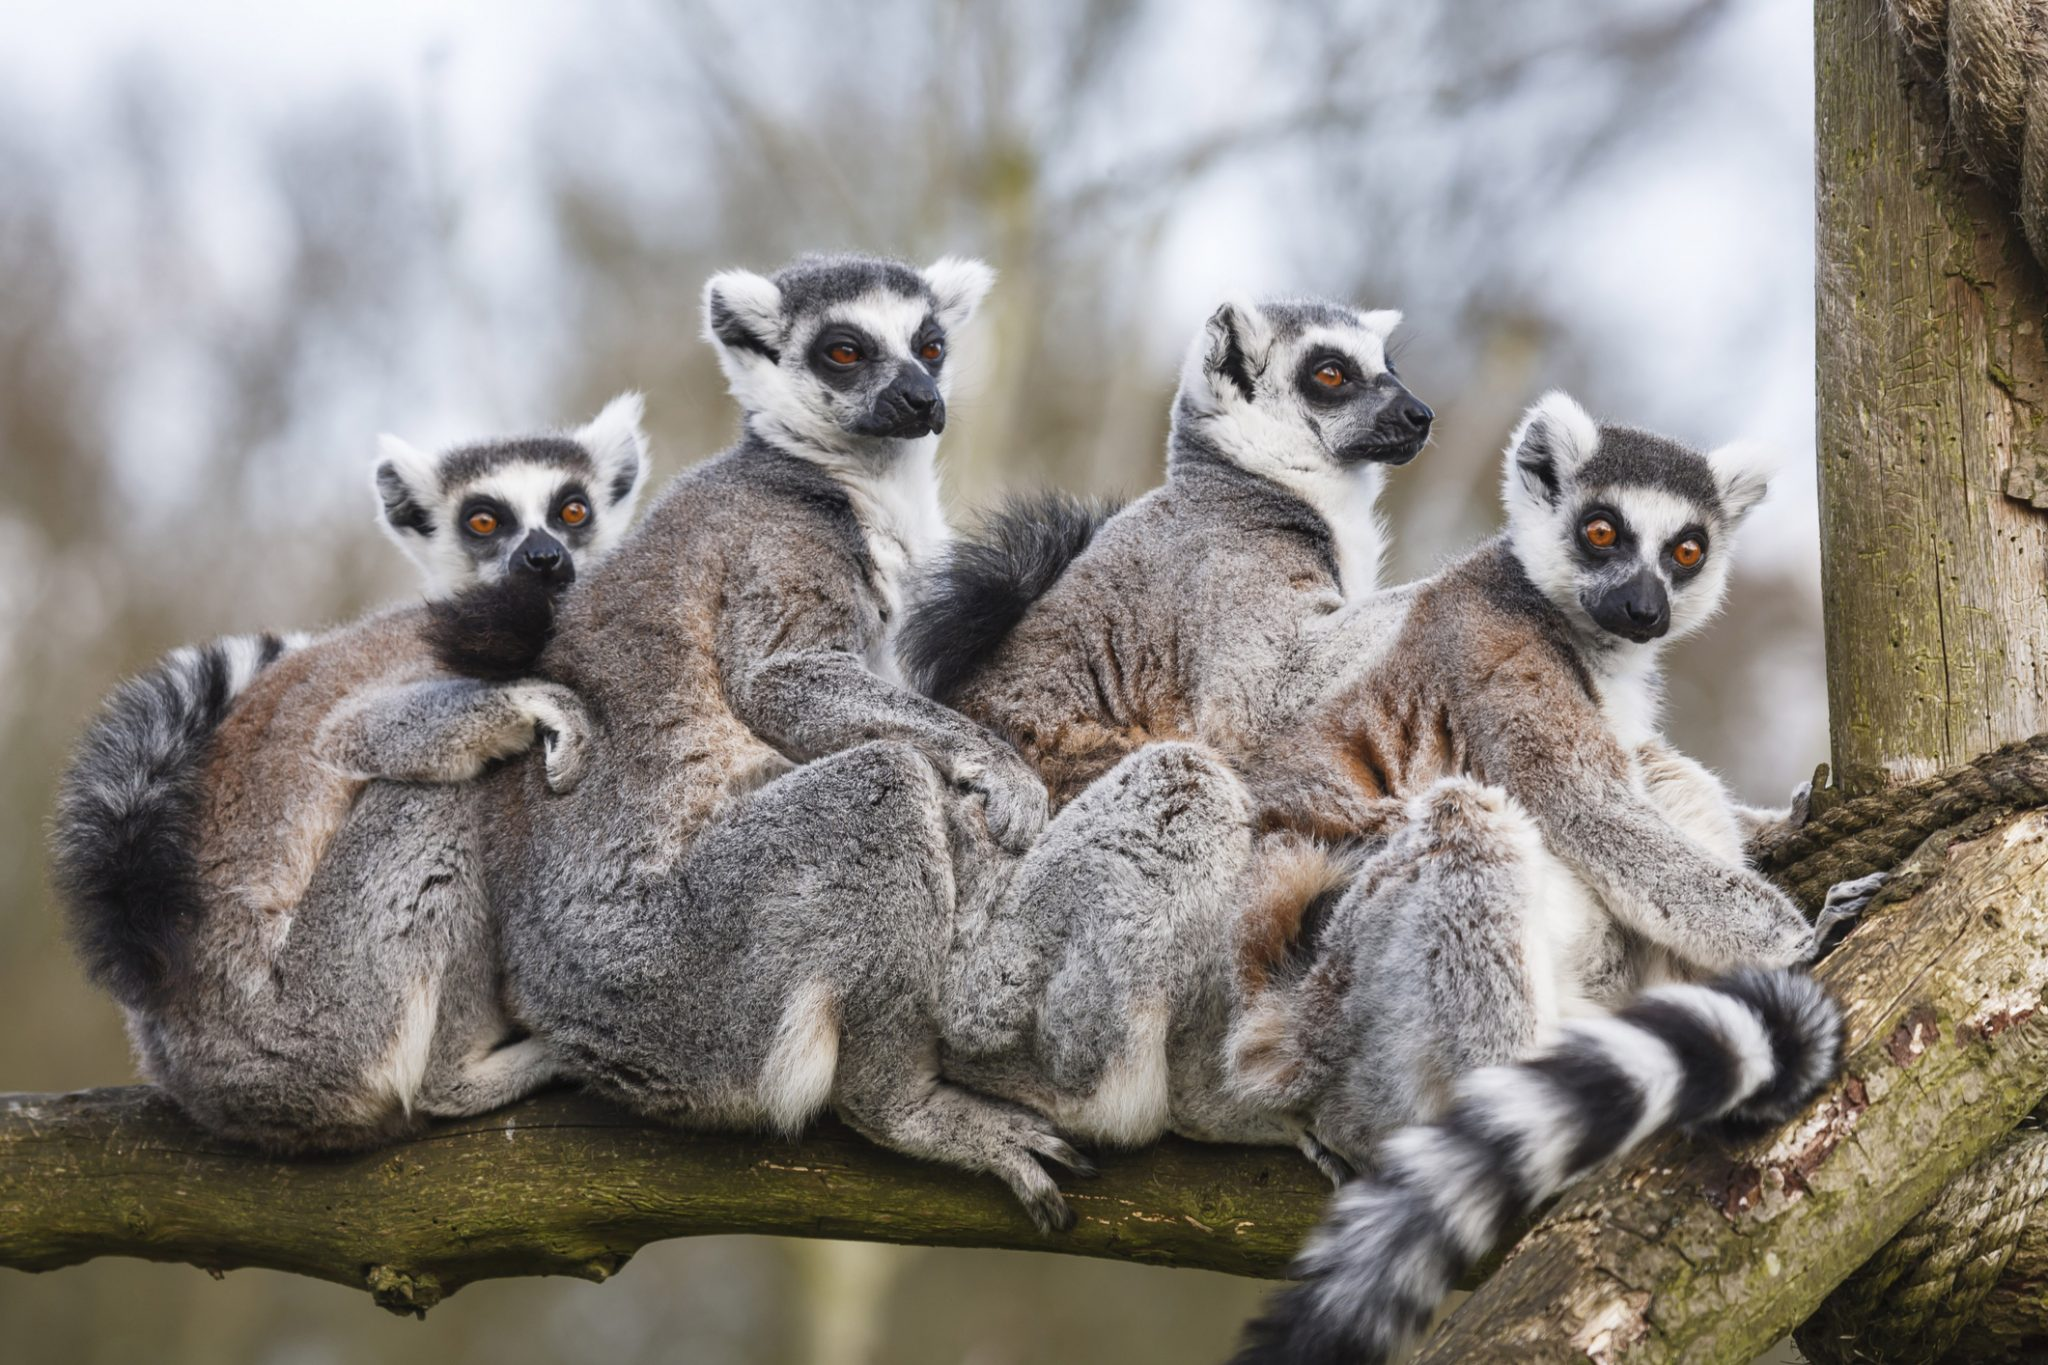 Lemur family sitting together in tree trunk